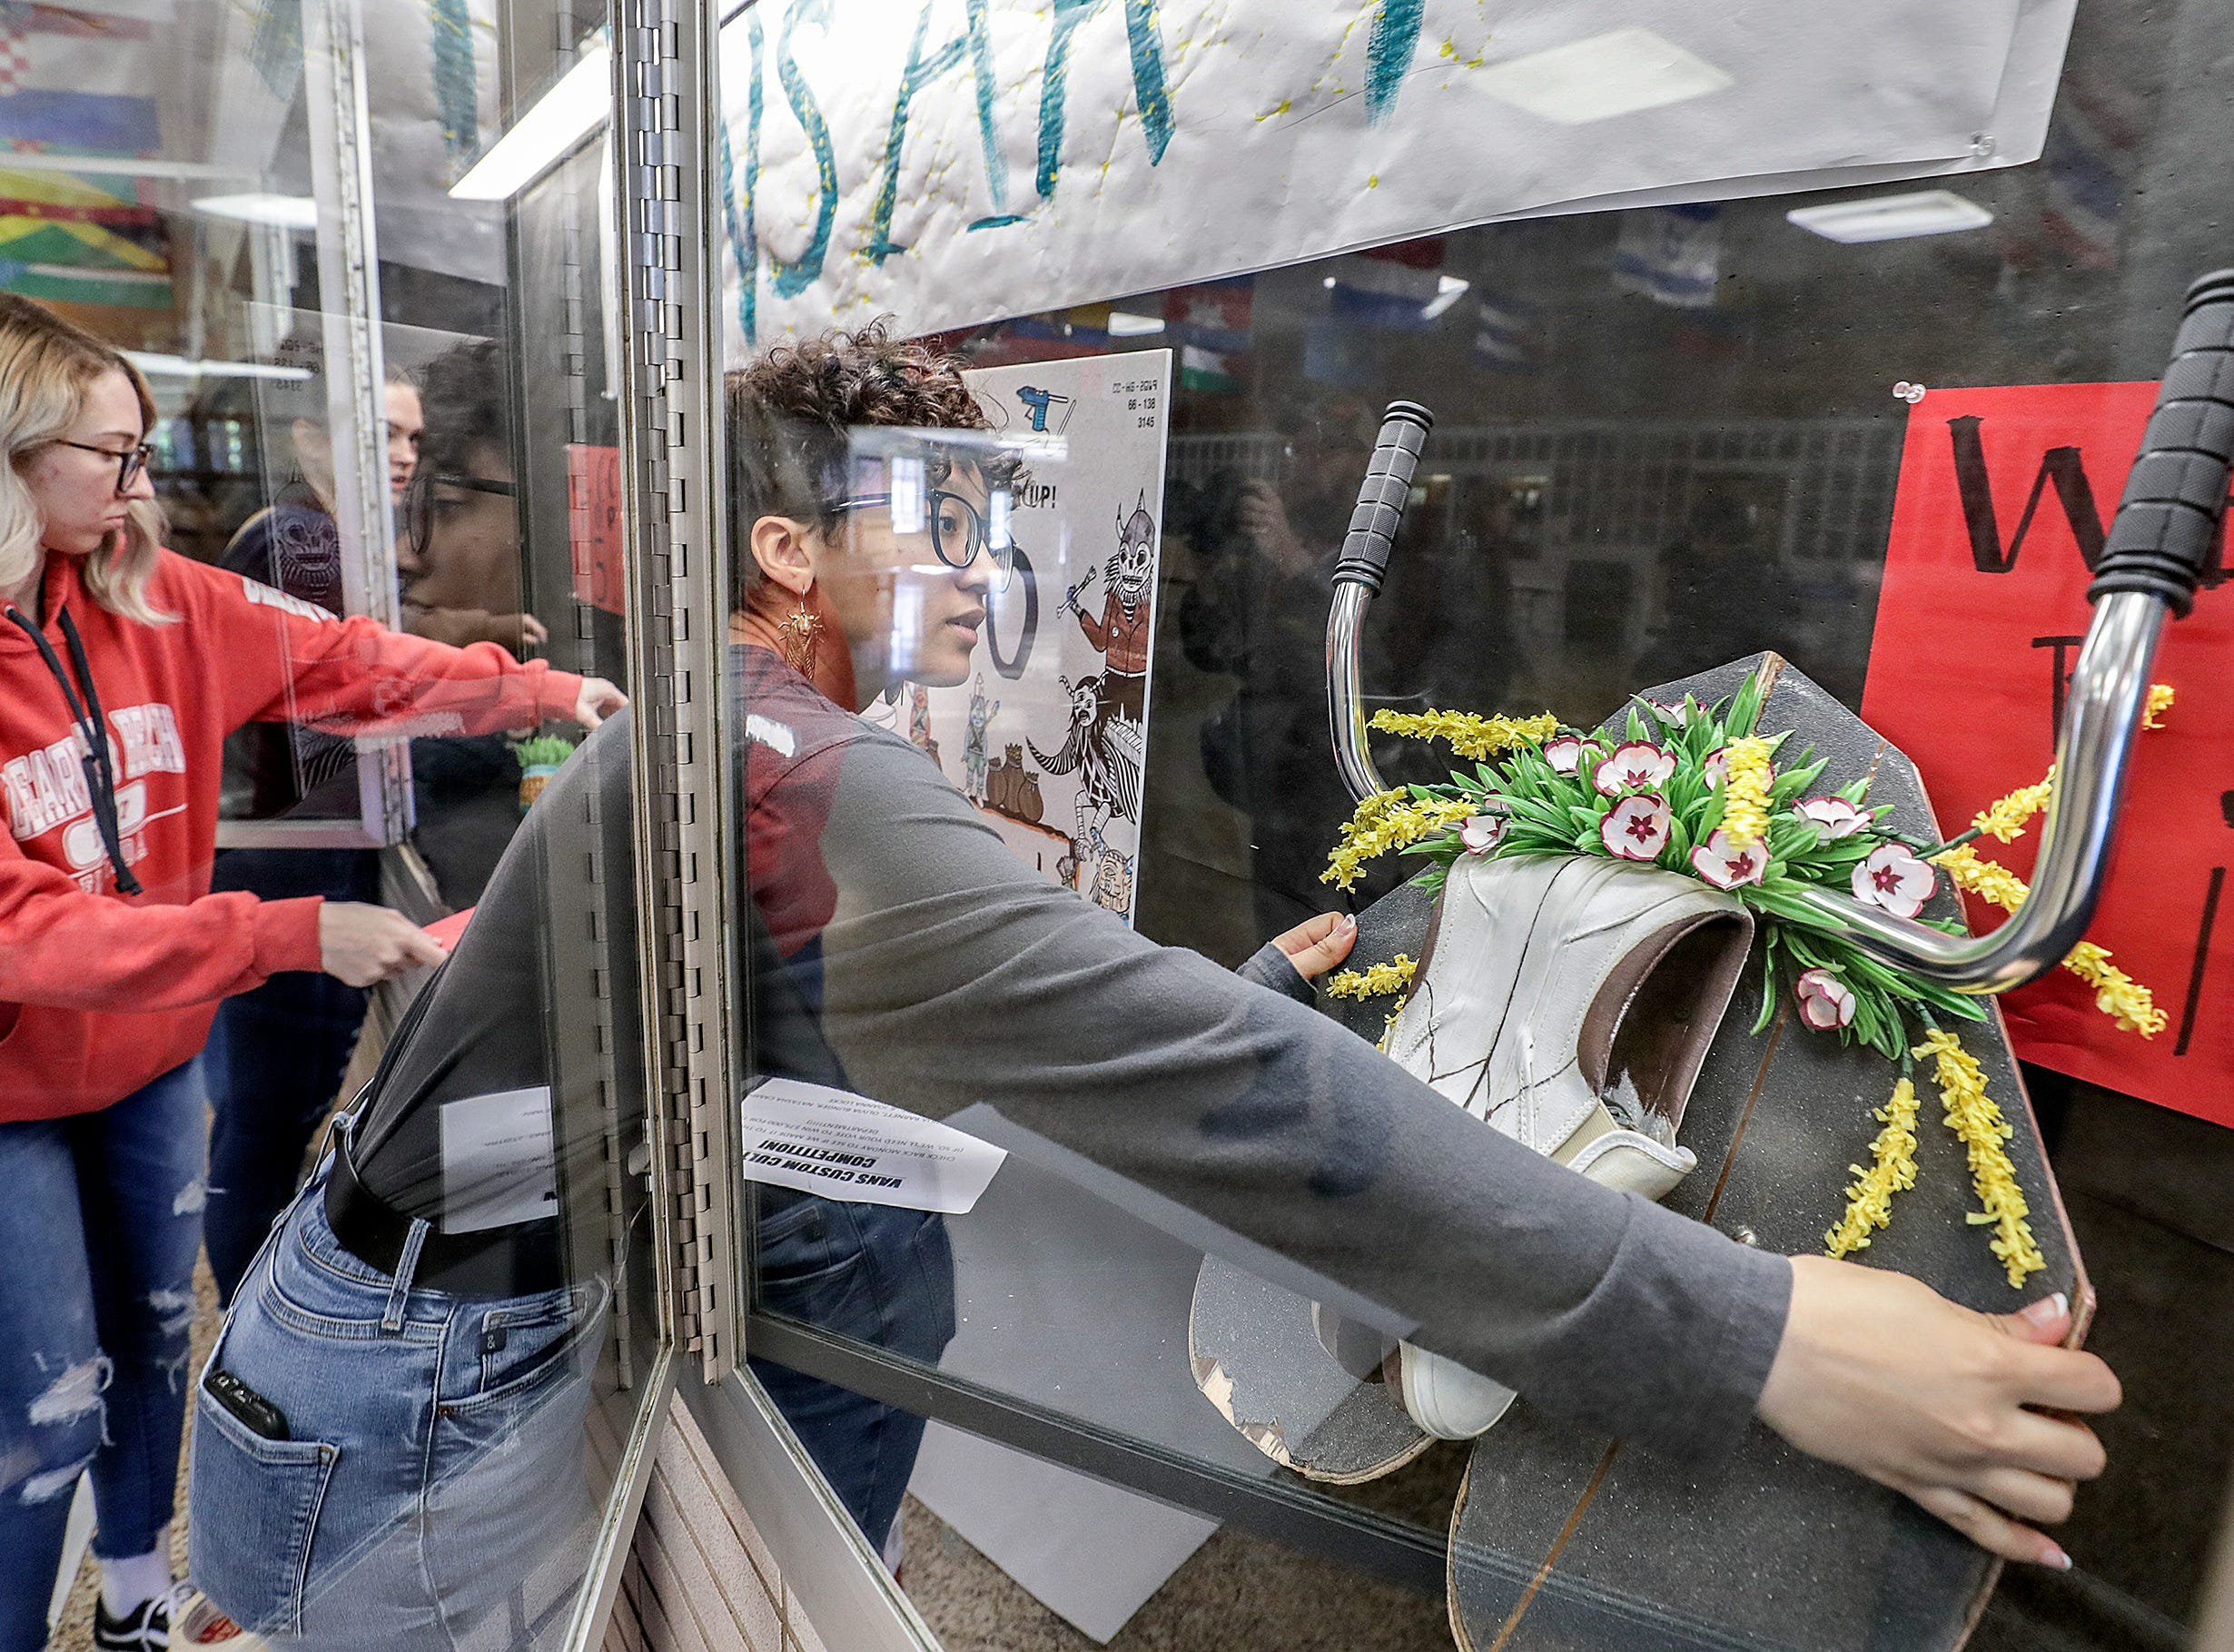 Atherton senior Natasha Campbell places a piece of art into a glass case after an assembly as part of the Vans Custom Culture contest.  The contest had students use the distinctive footwear to design shoes that depict their state.  Atherton was one of the runner ups and received $10,000 from Vans.May 14, 2019